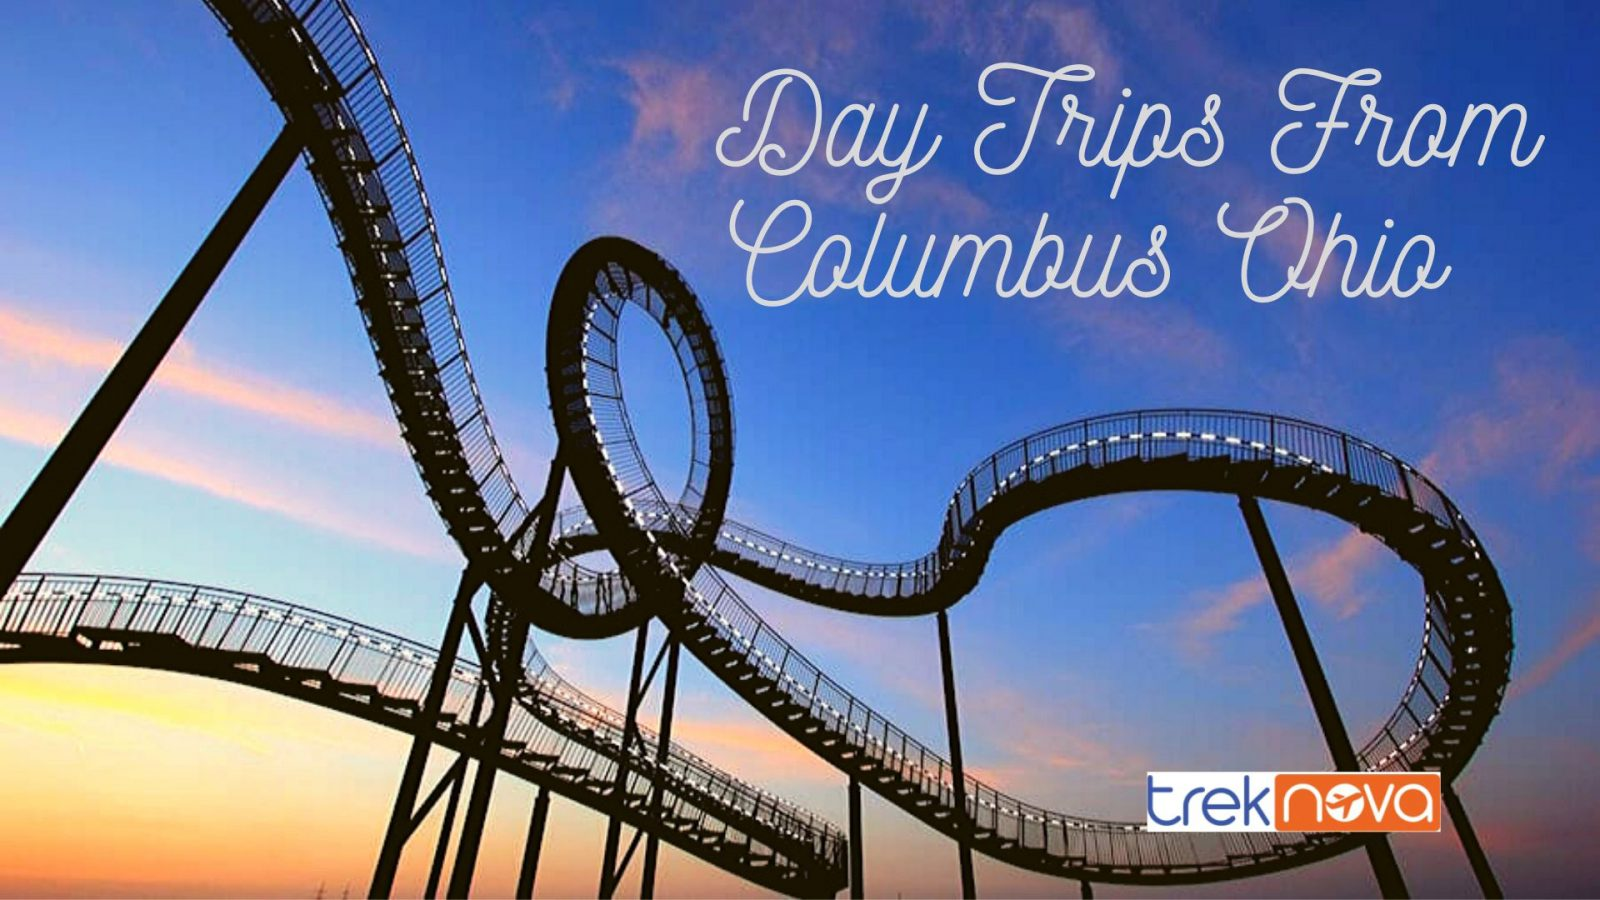 Day Trips From Columbus Ohio